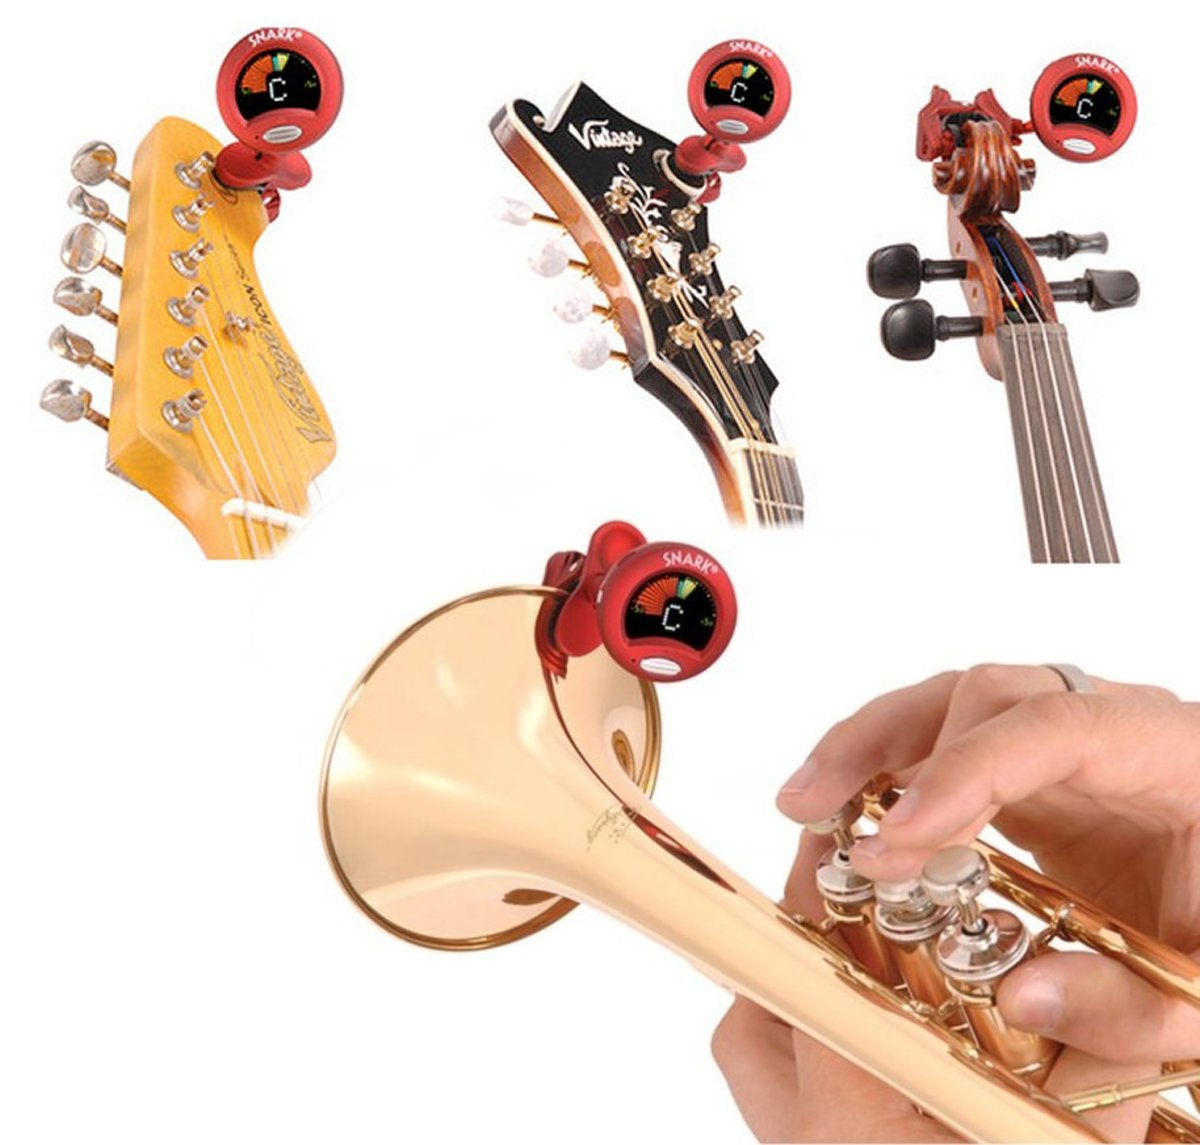 Universal tuner that works with stringed, woodwind and brass instruments. The cheapest, most accurate one on the market.